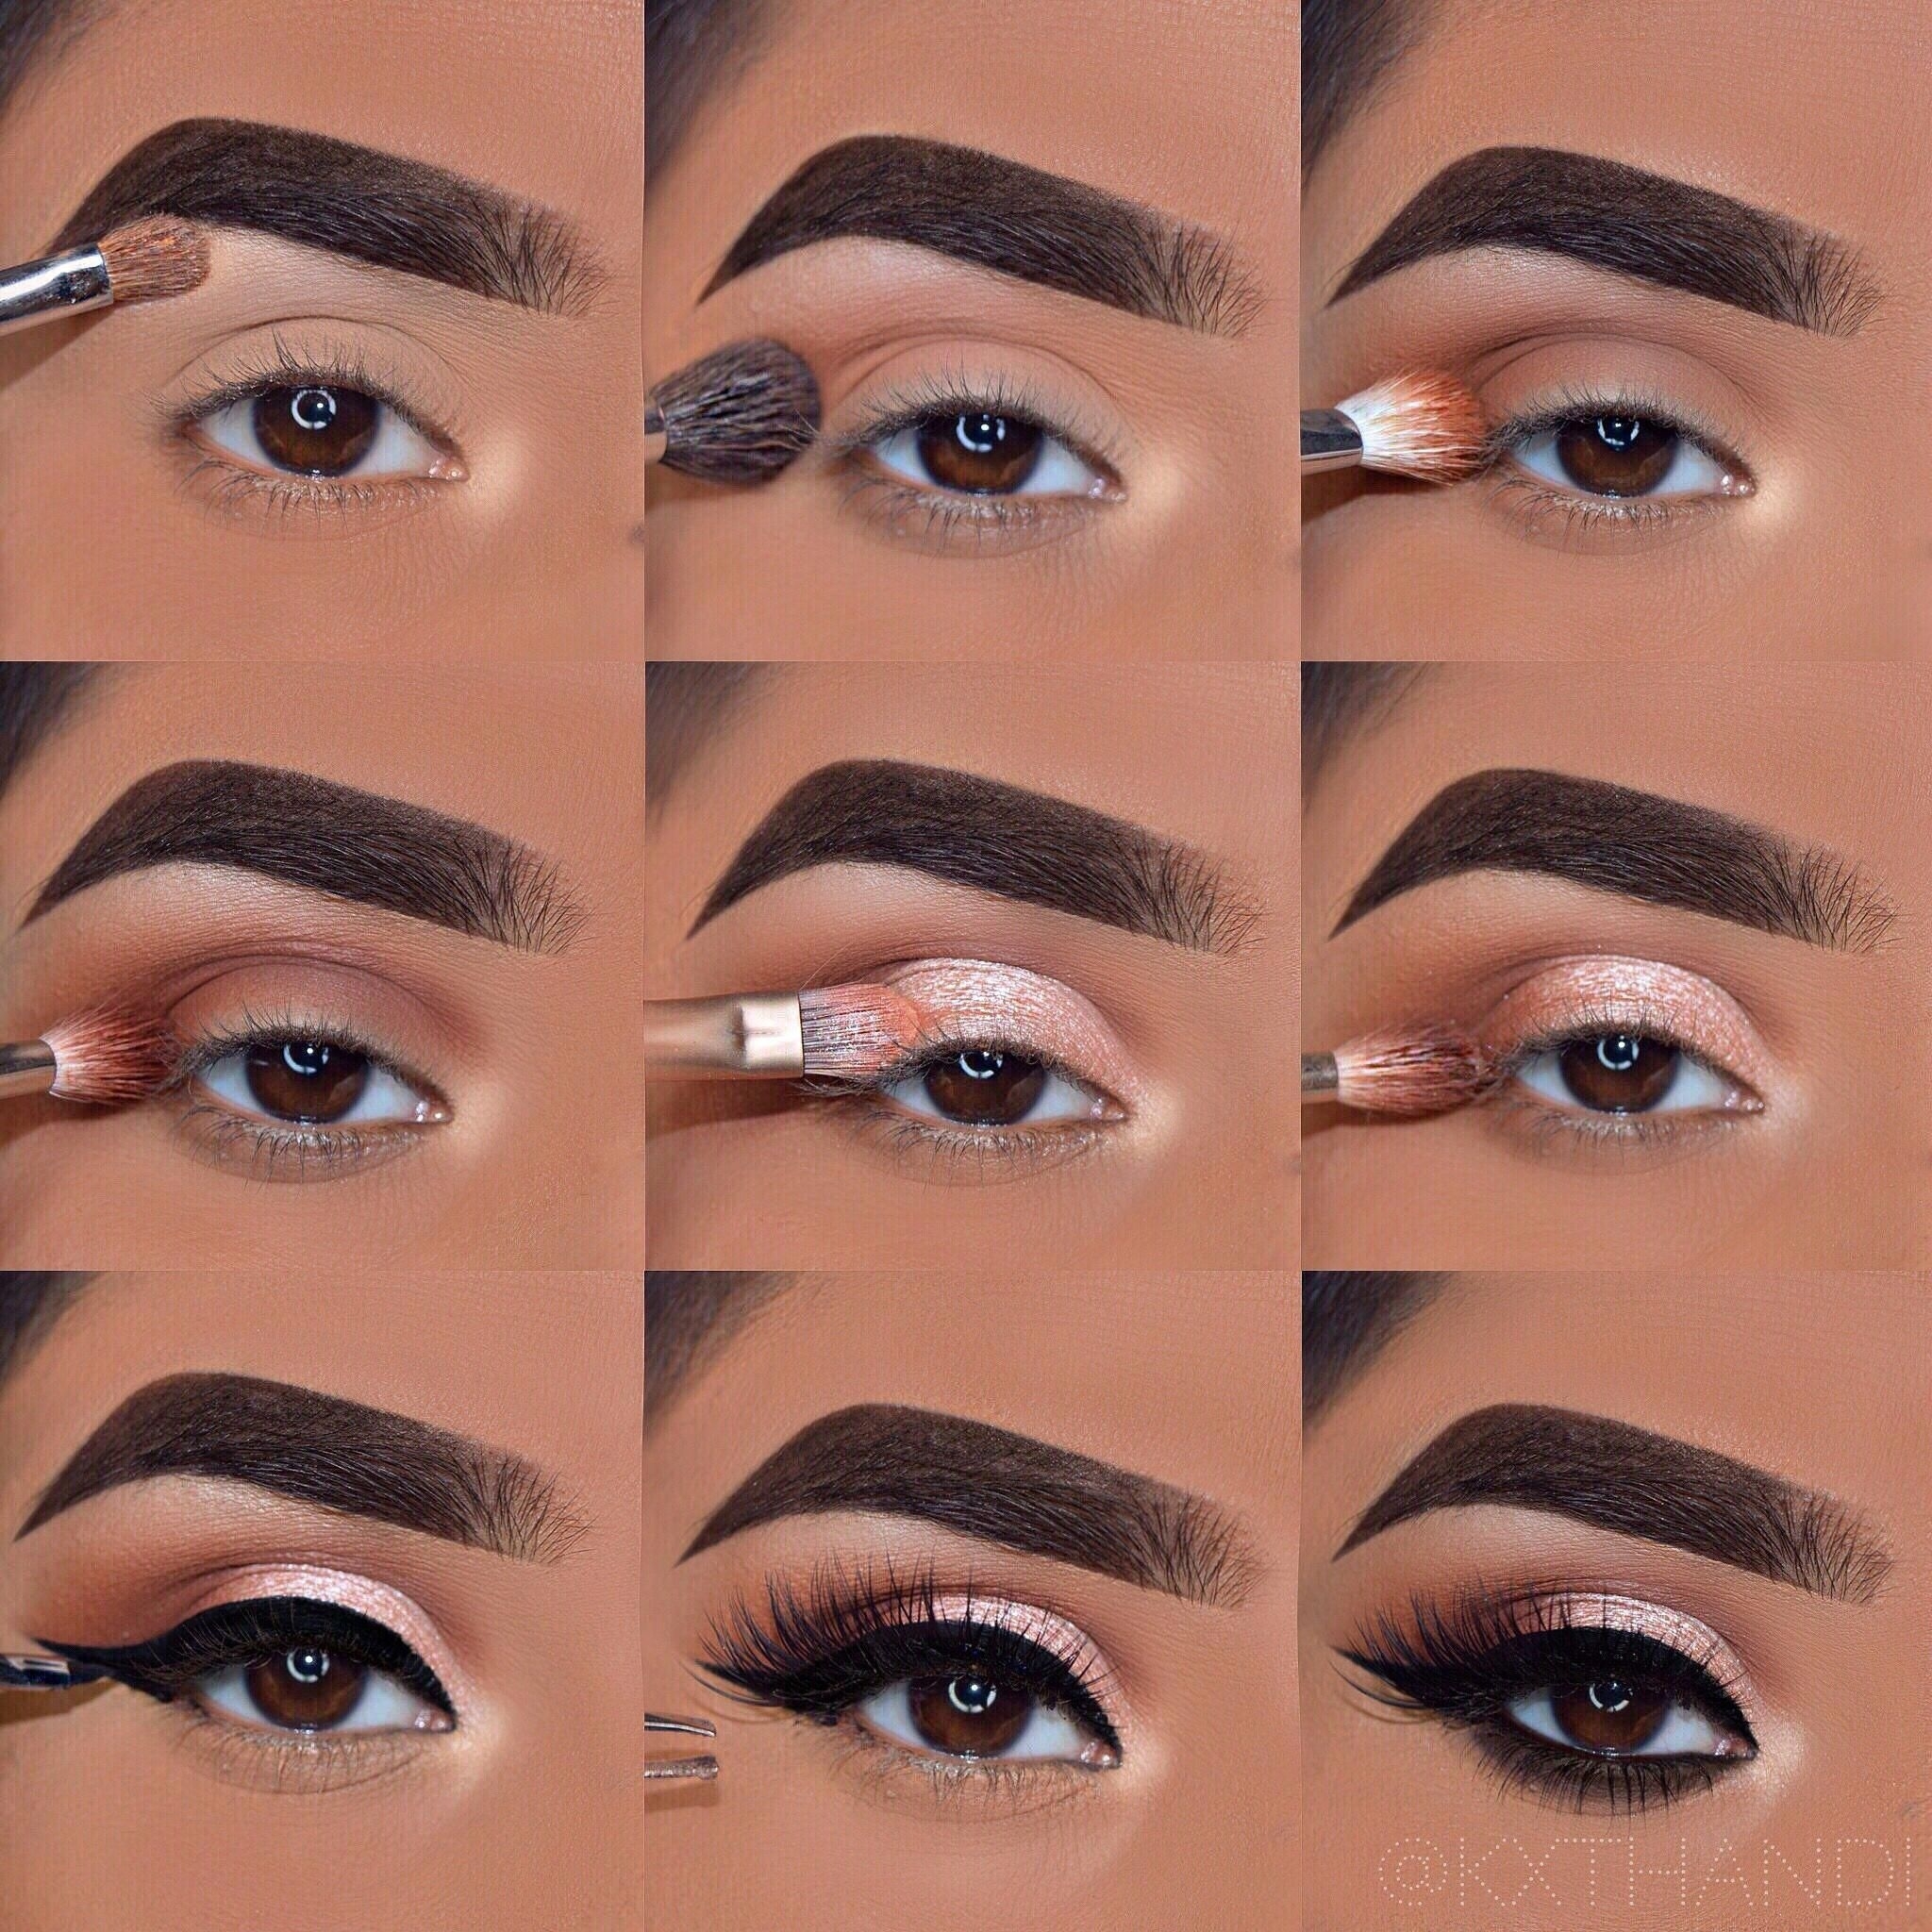 Makeup Step By Step Tutorial. Everyday Glam inside Eye Makeup Images Step By Step